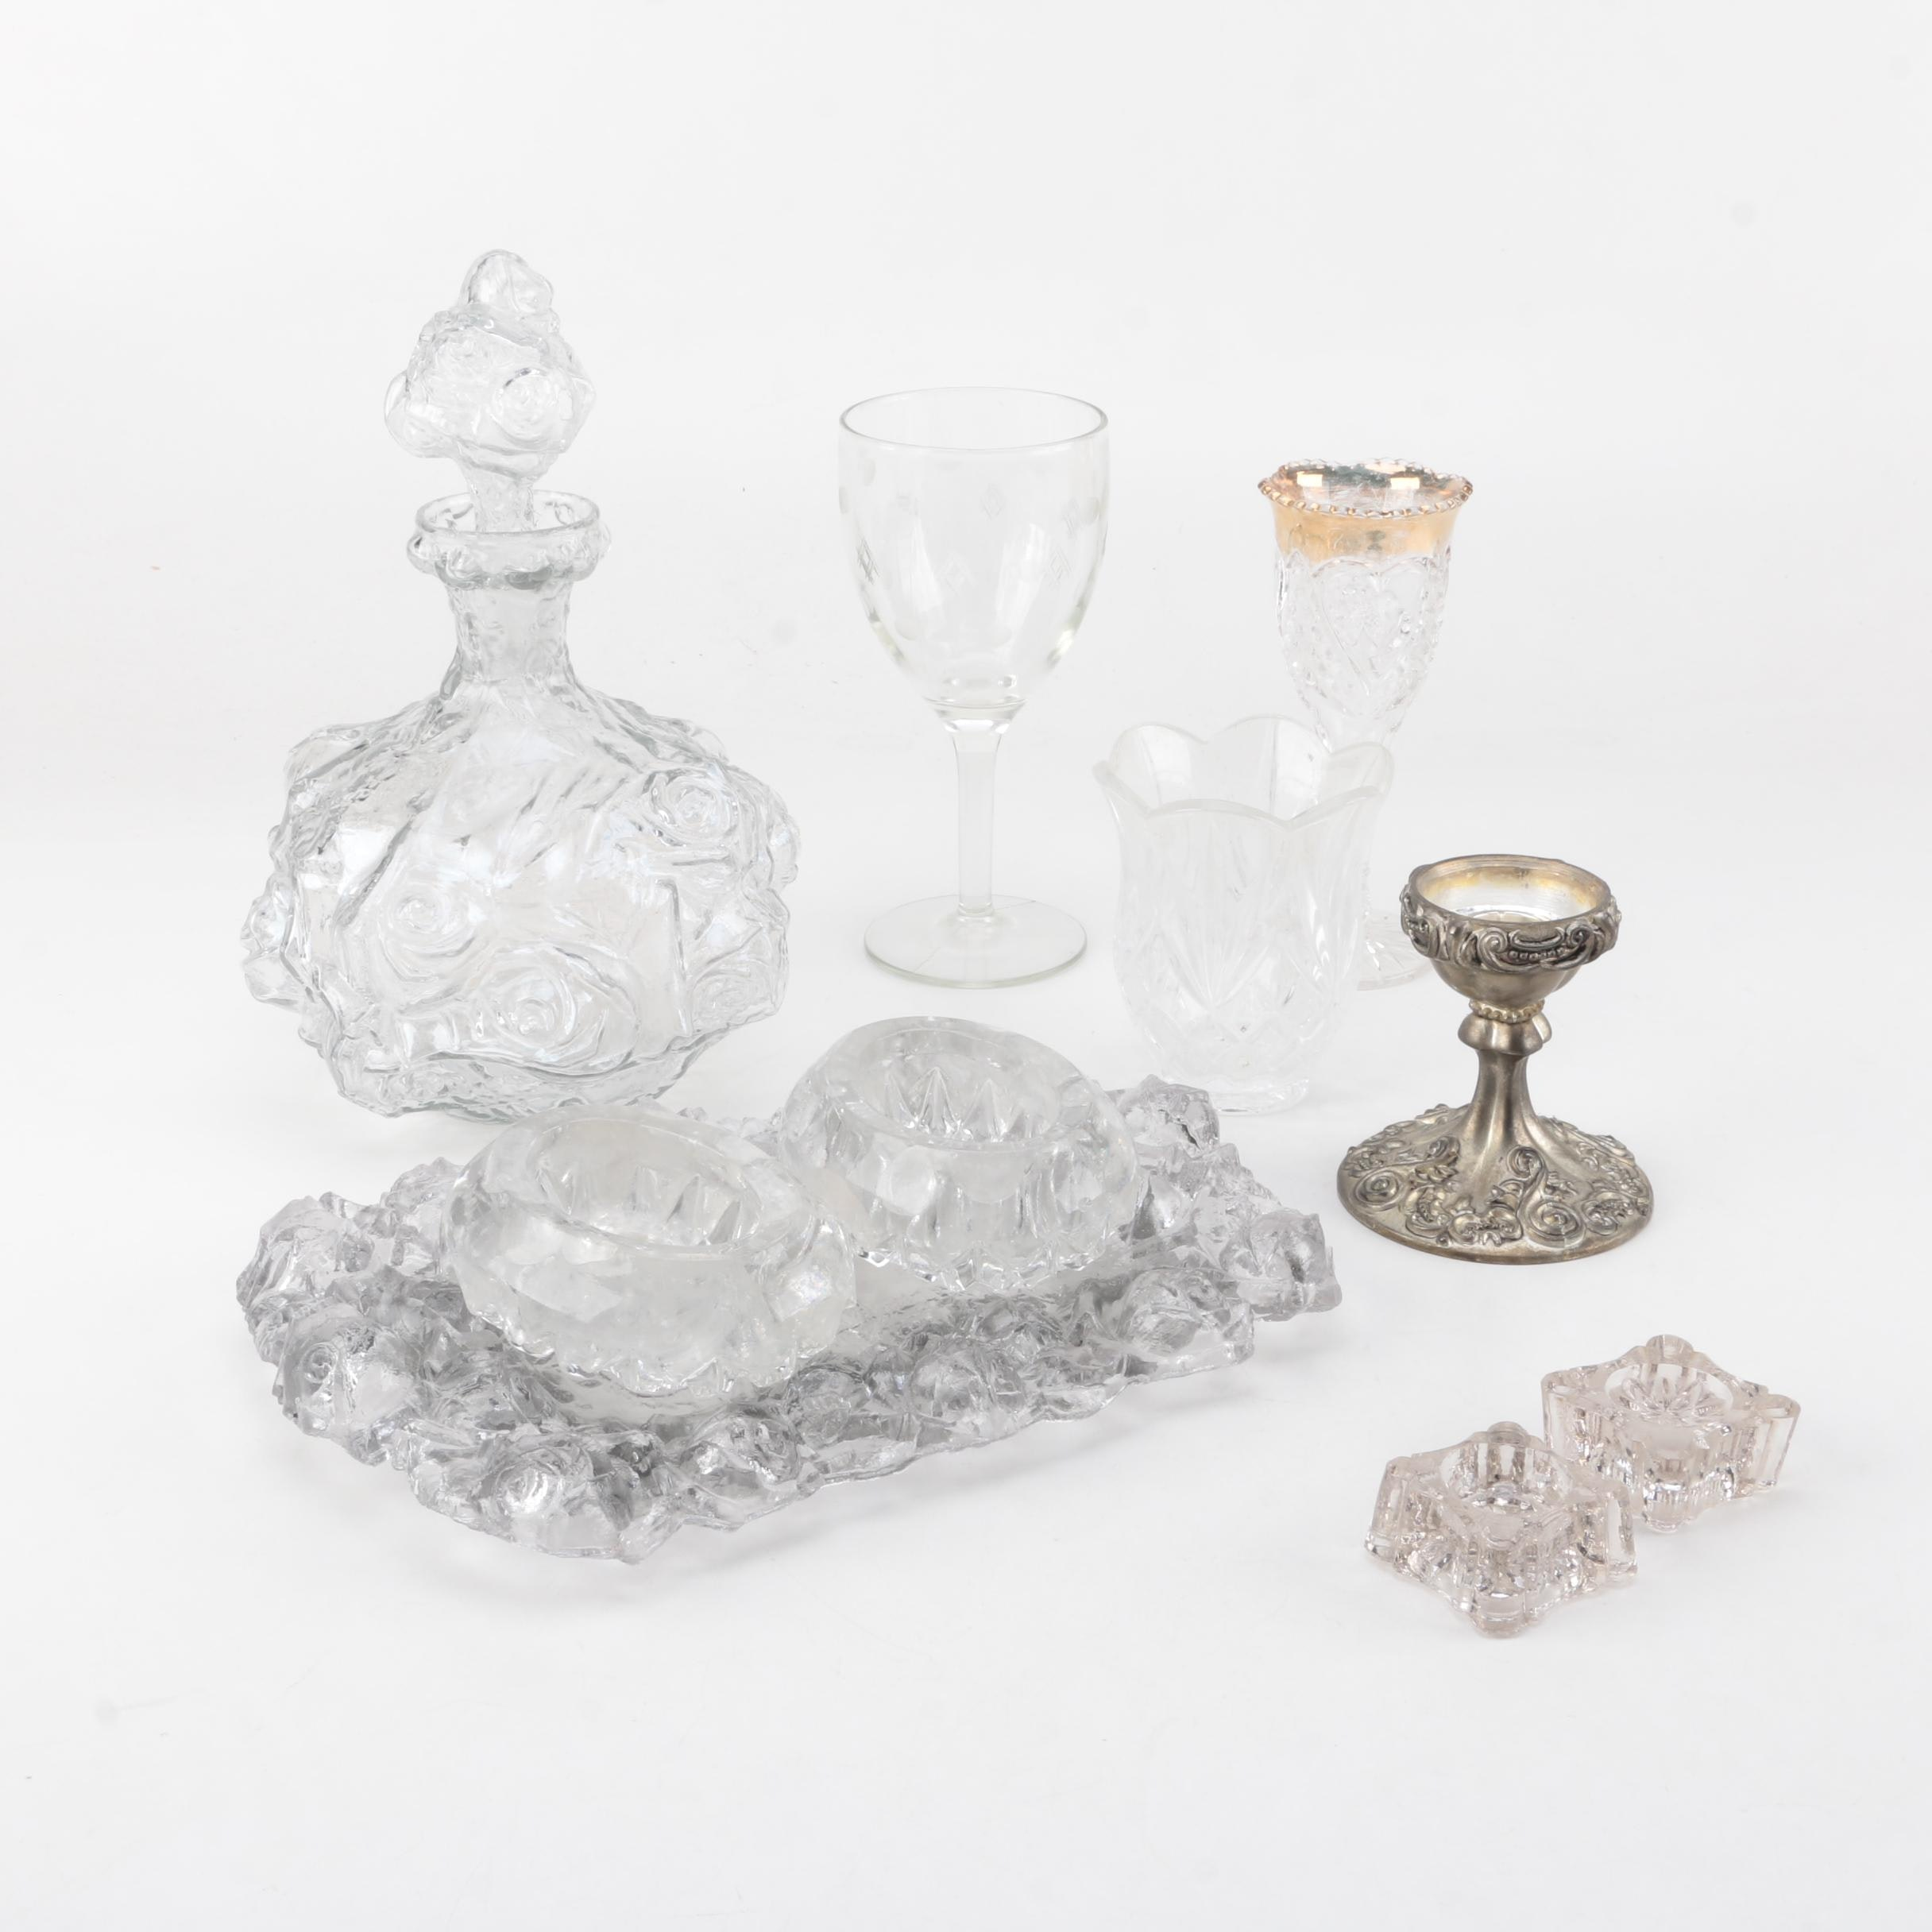 Godinger Silver Plate Candle Holder with Assorted Glassware and Table Decor